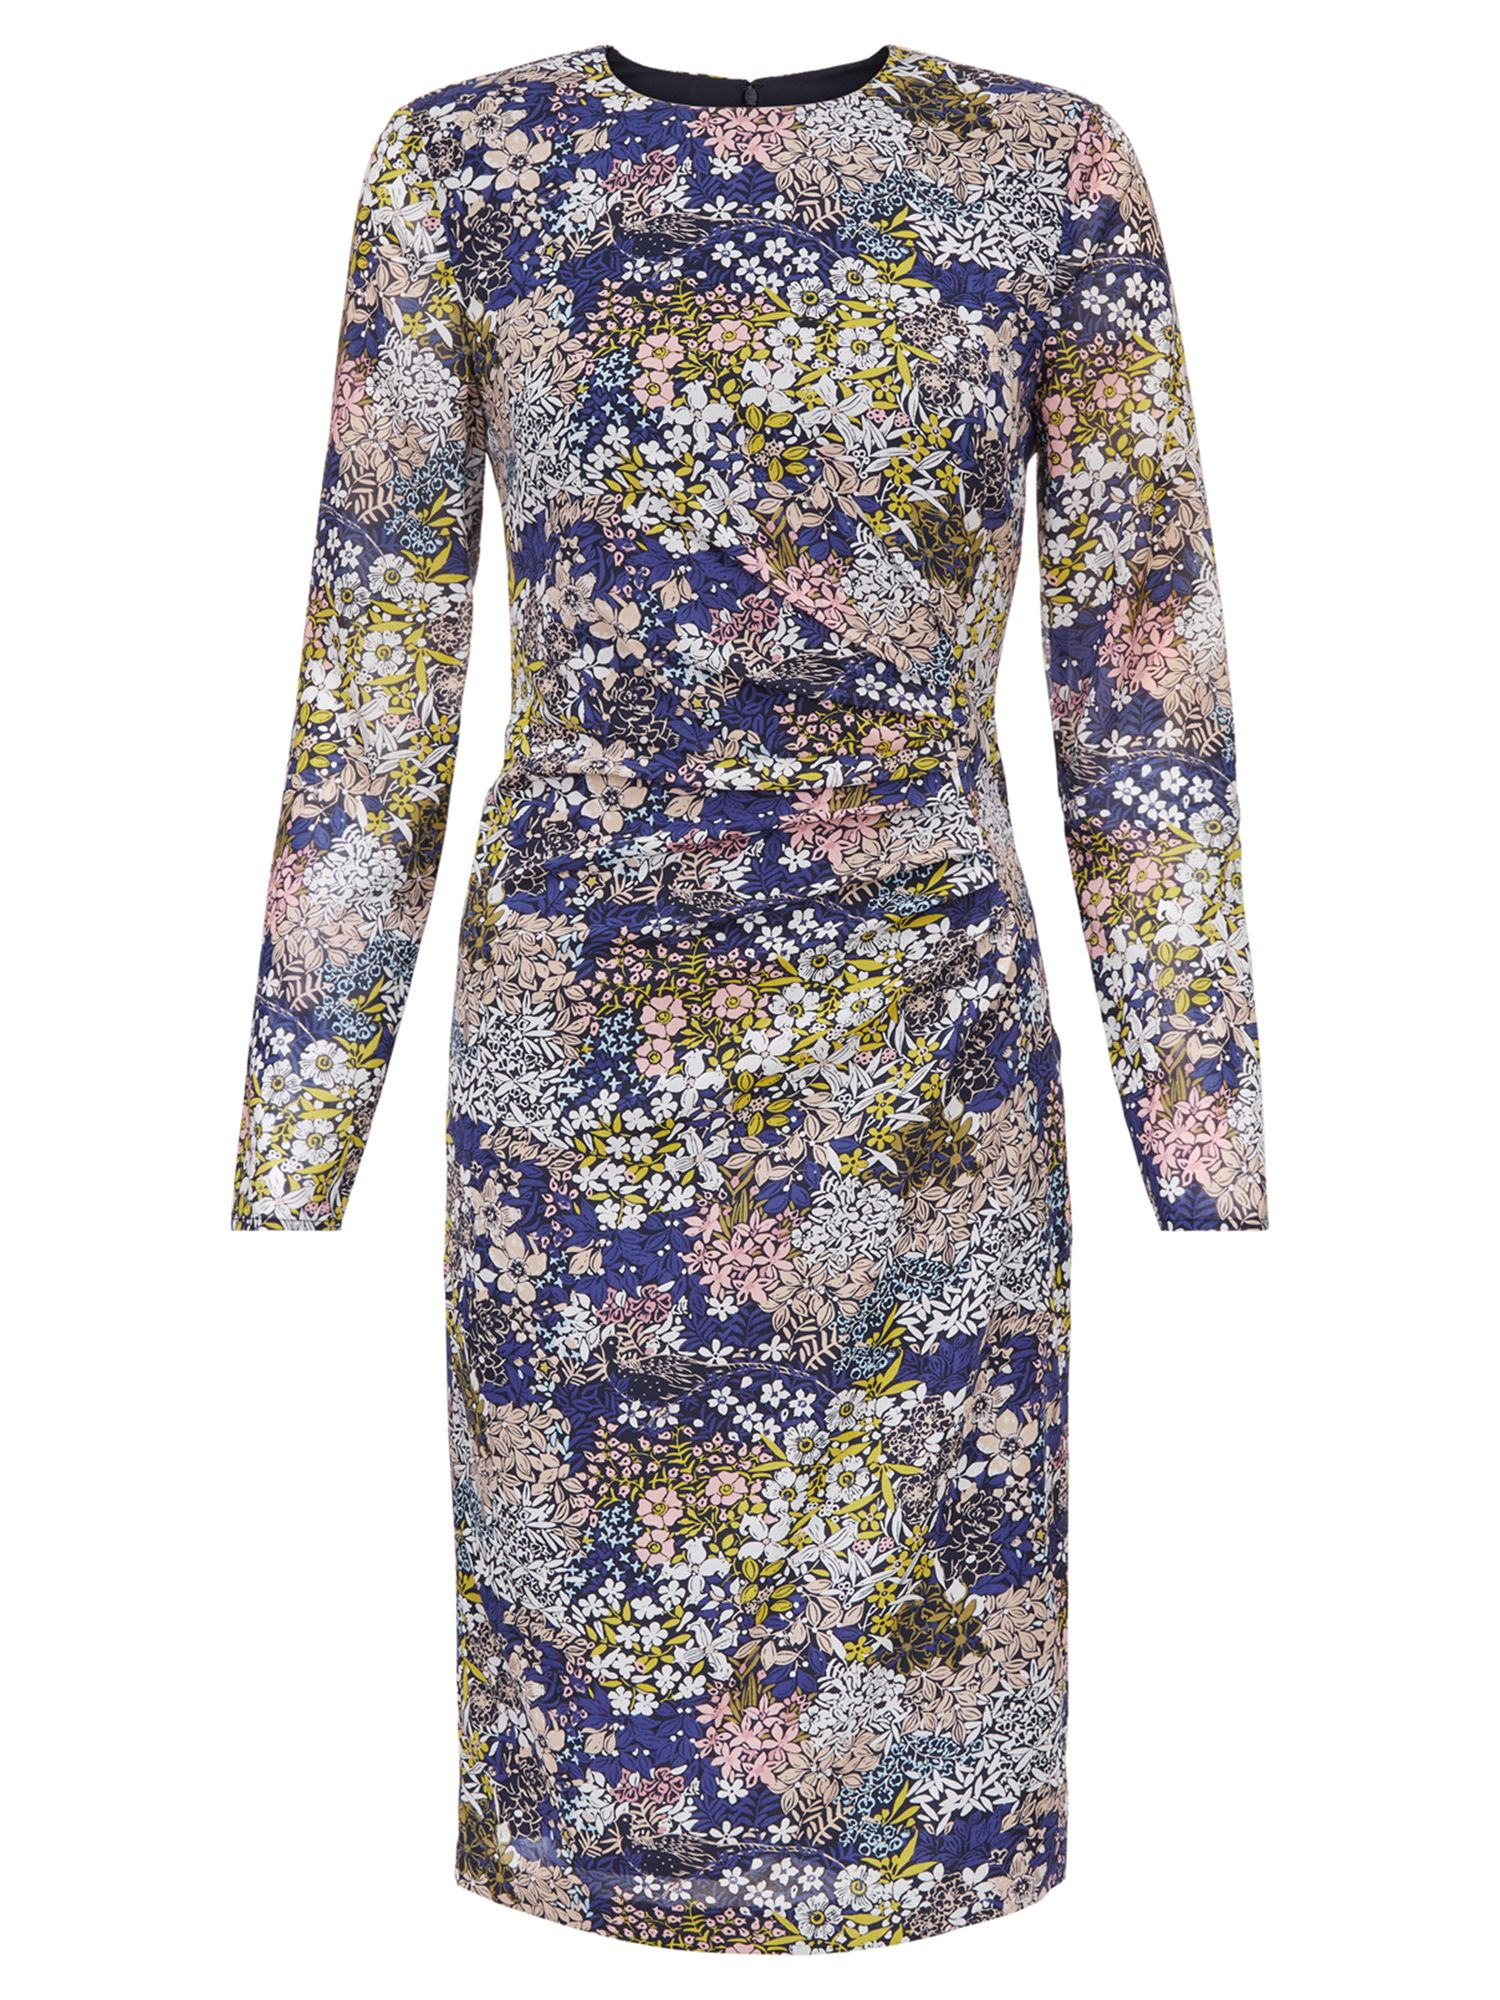 Hobbs Merida Dress, Multi-Coloured